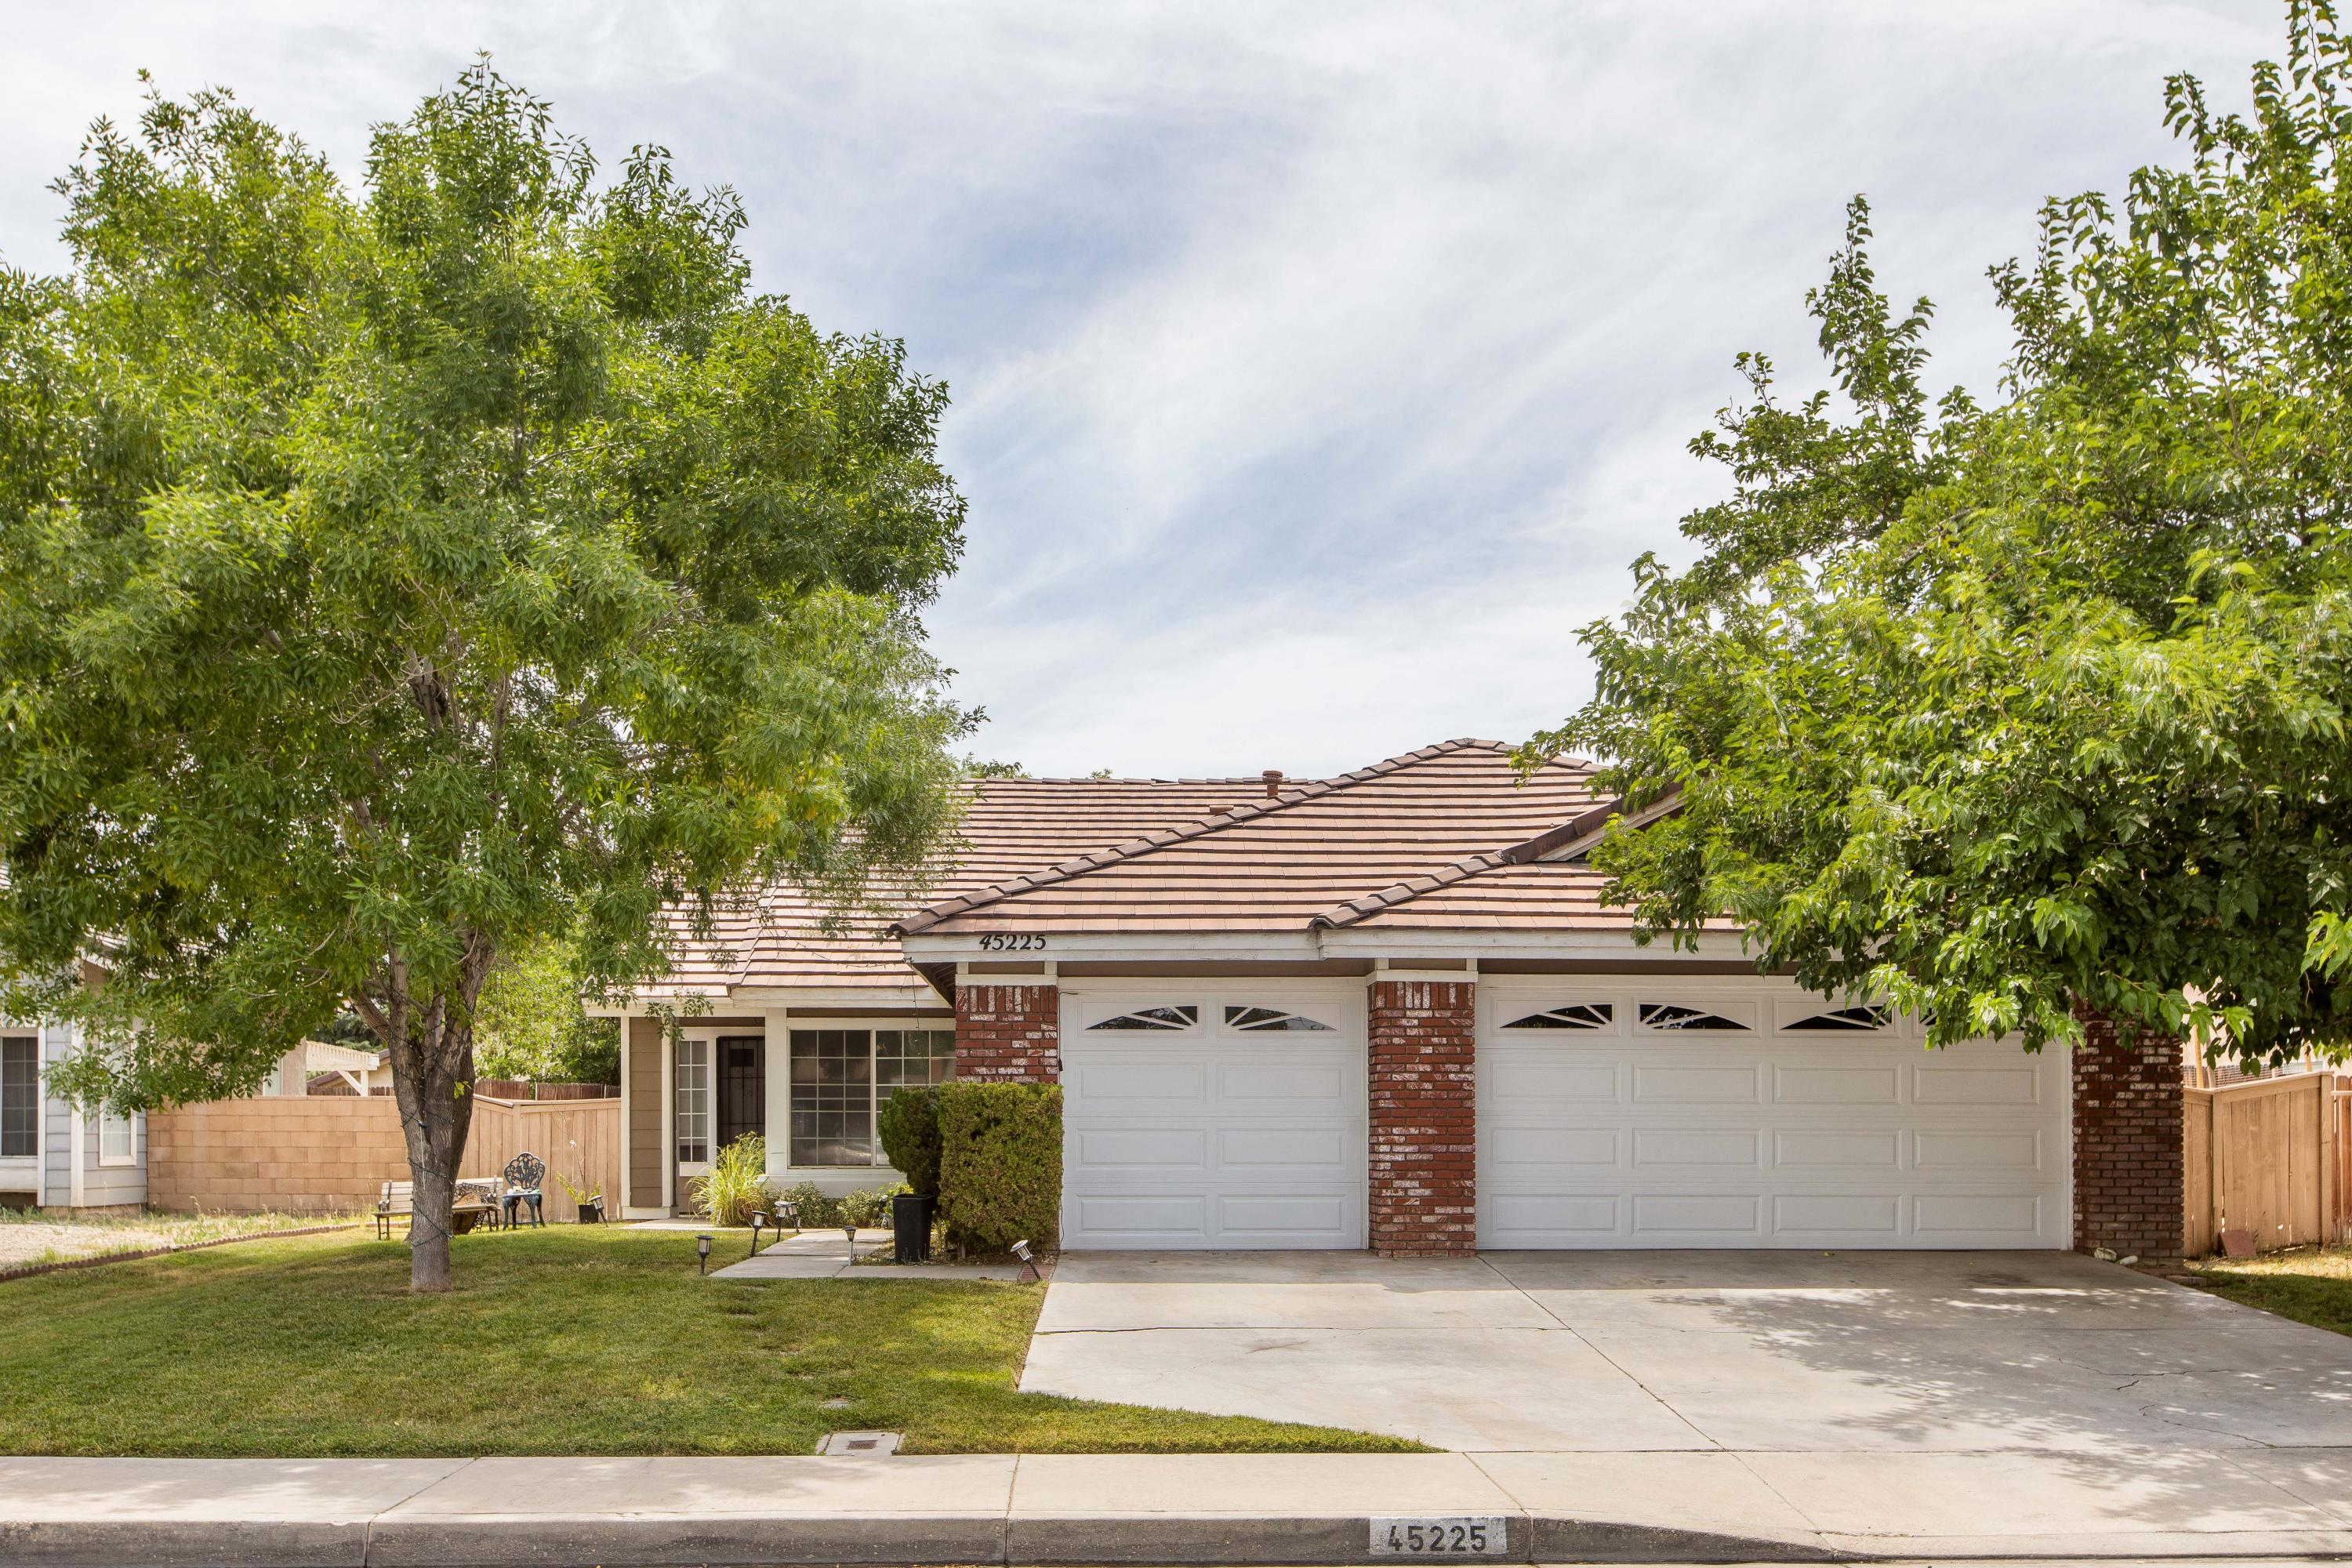 45225 W 17th Street, Lancaster in Los Angeles County, CA 93534 Home for Sale